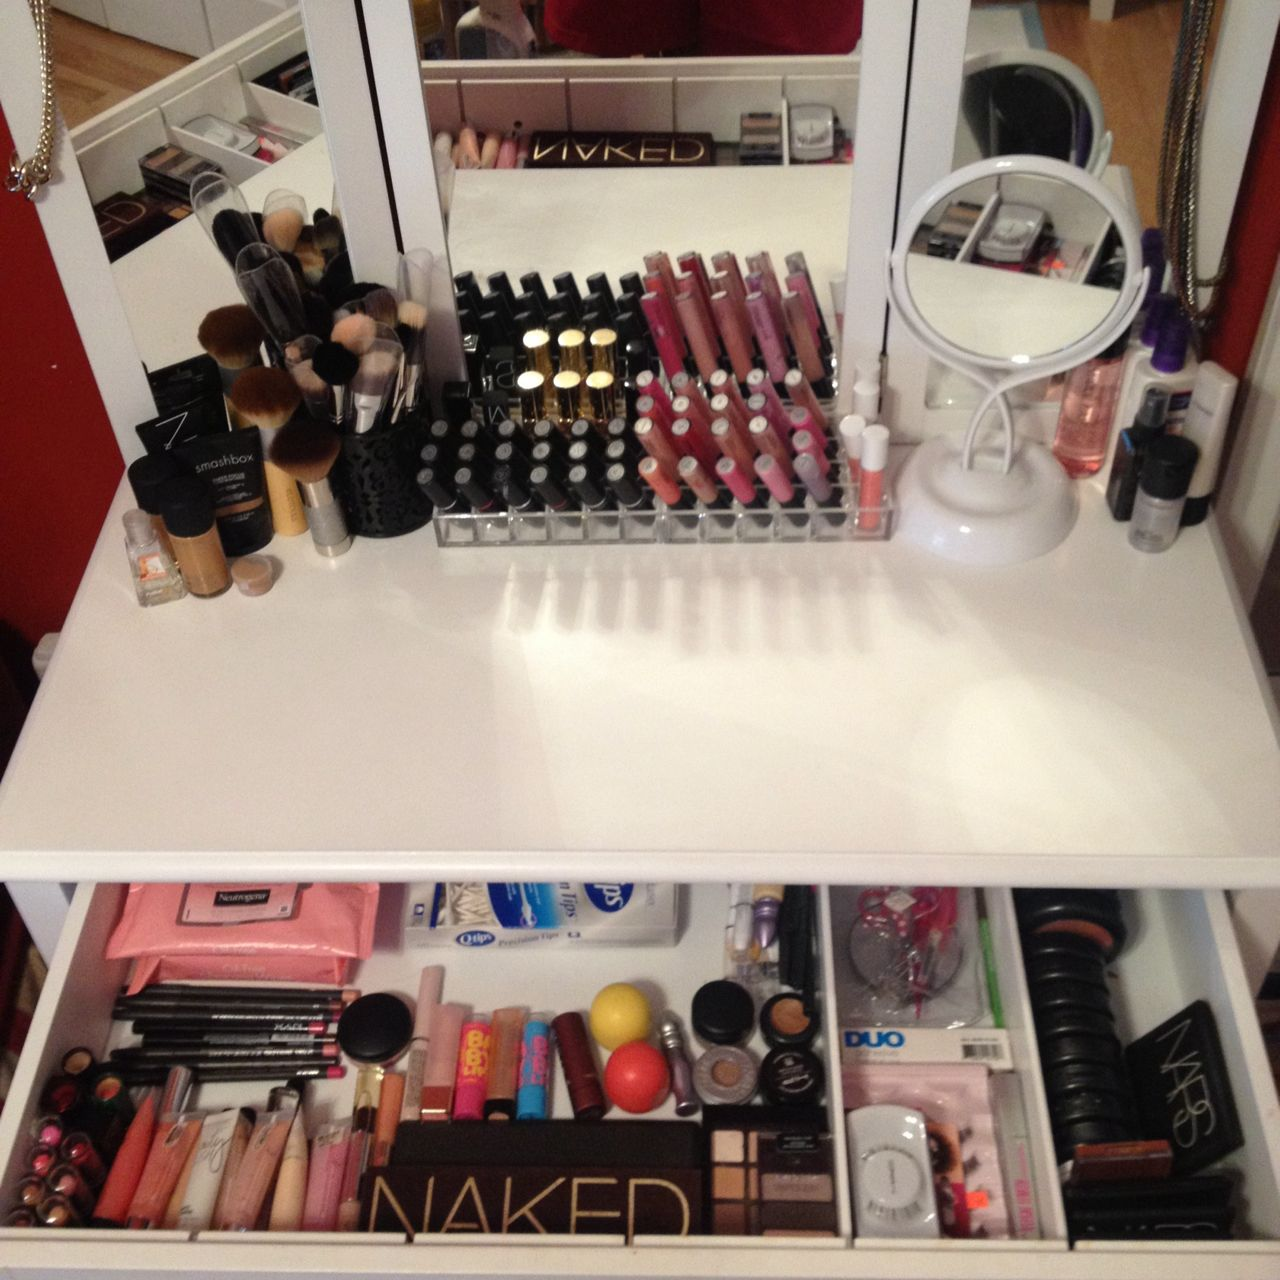 I need my make up this nicely organized